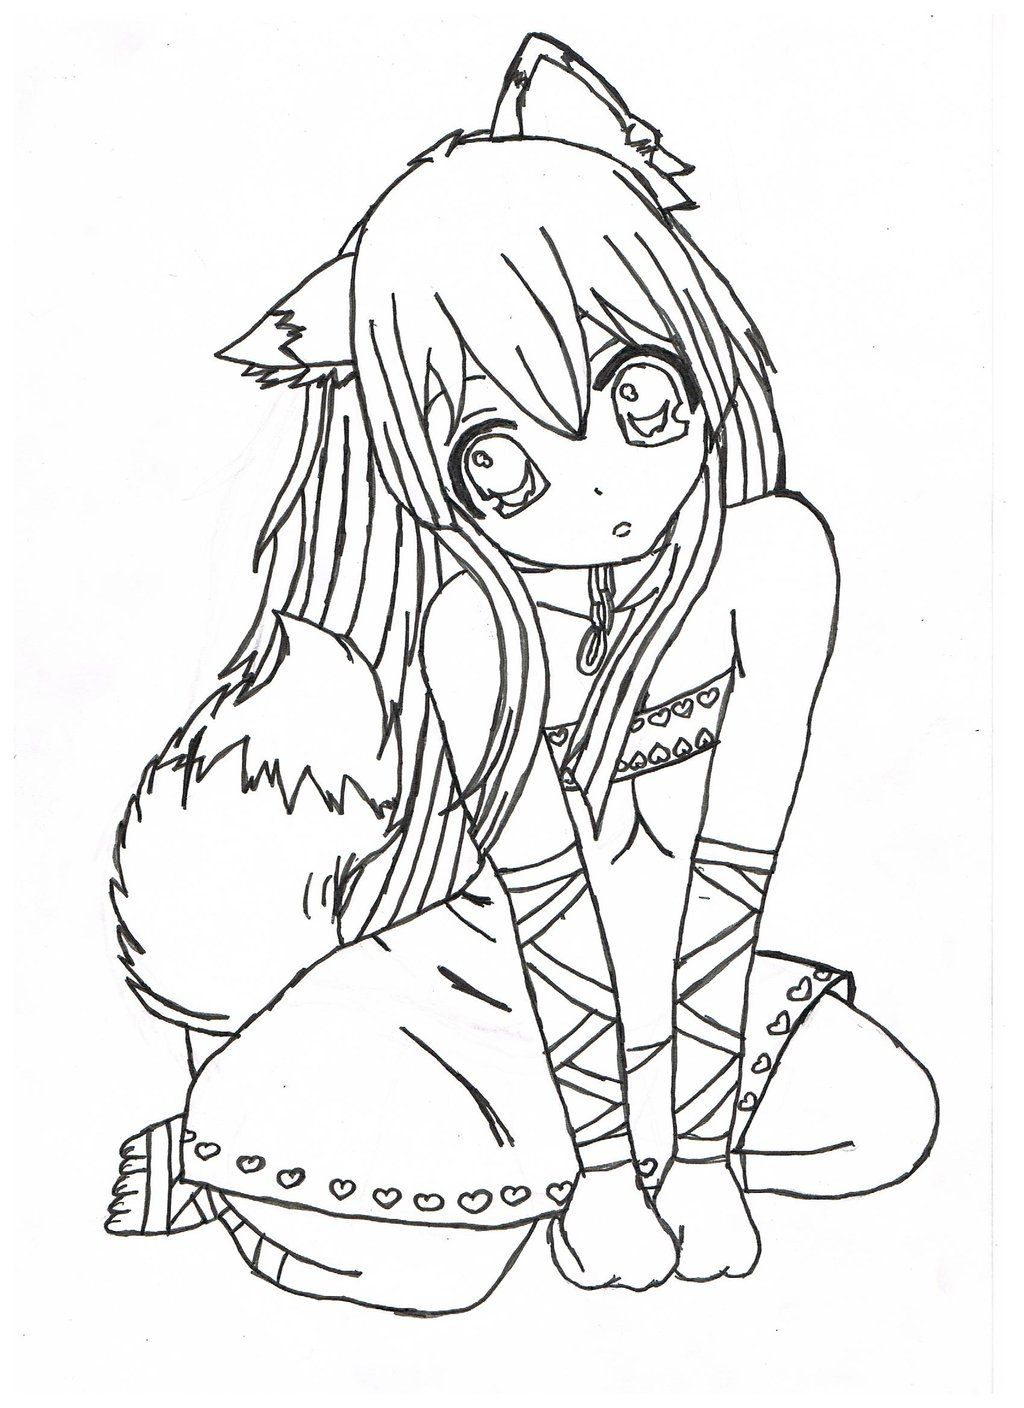 anime coloring pages best coloring pages for kids.html